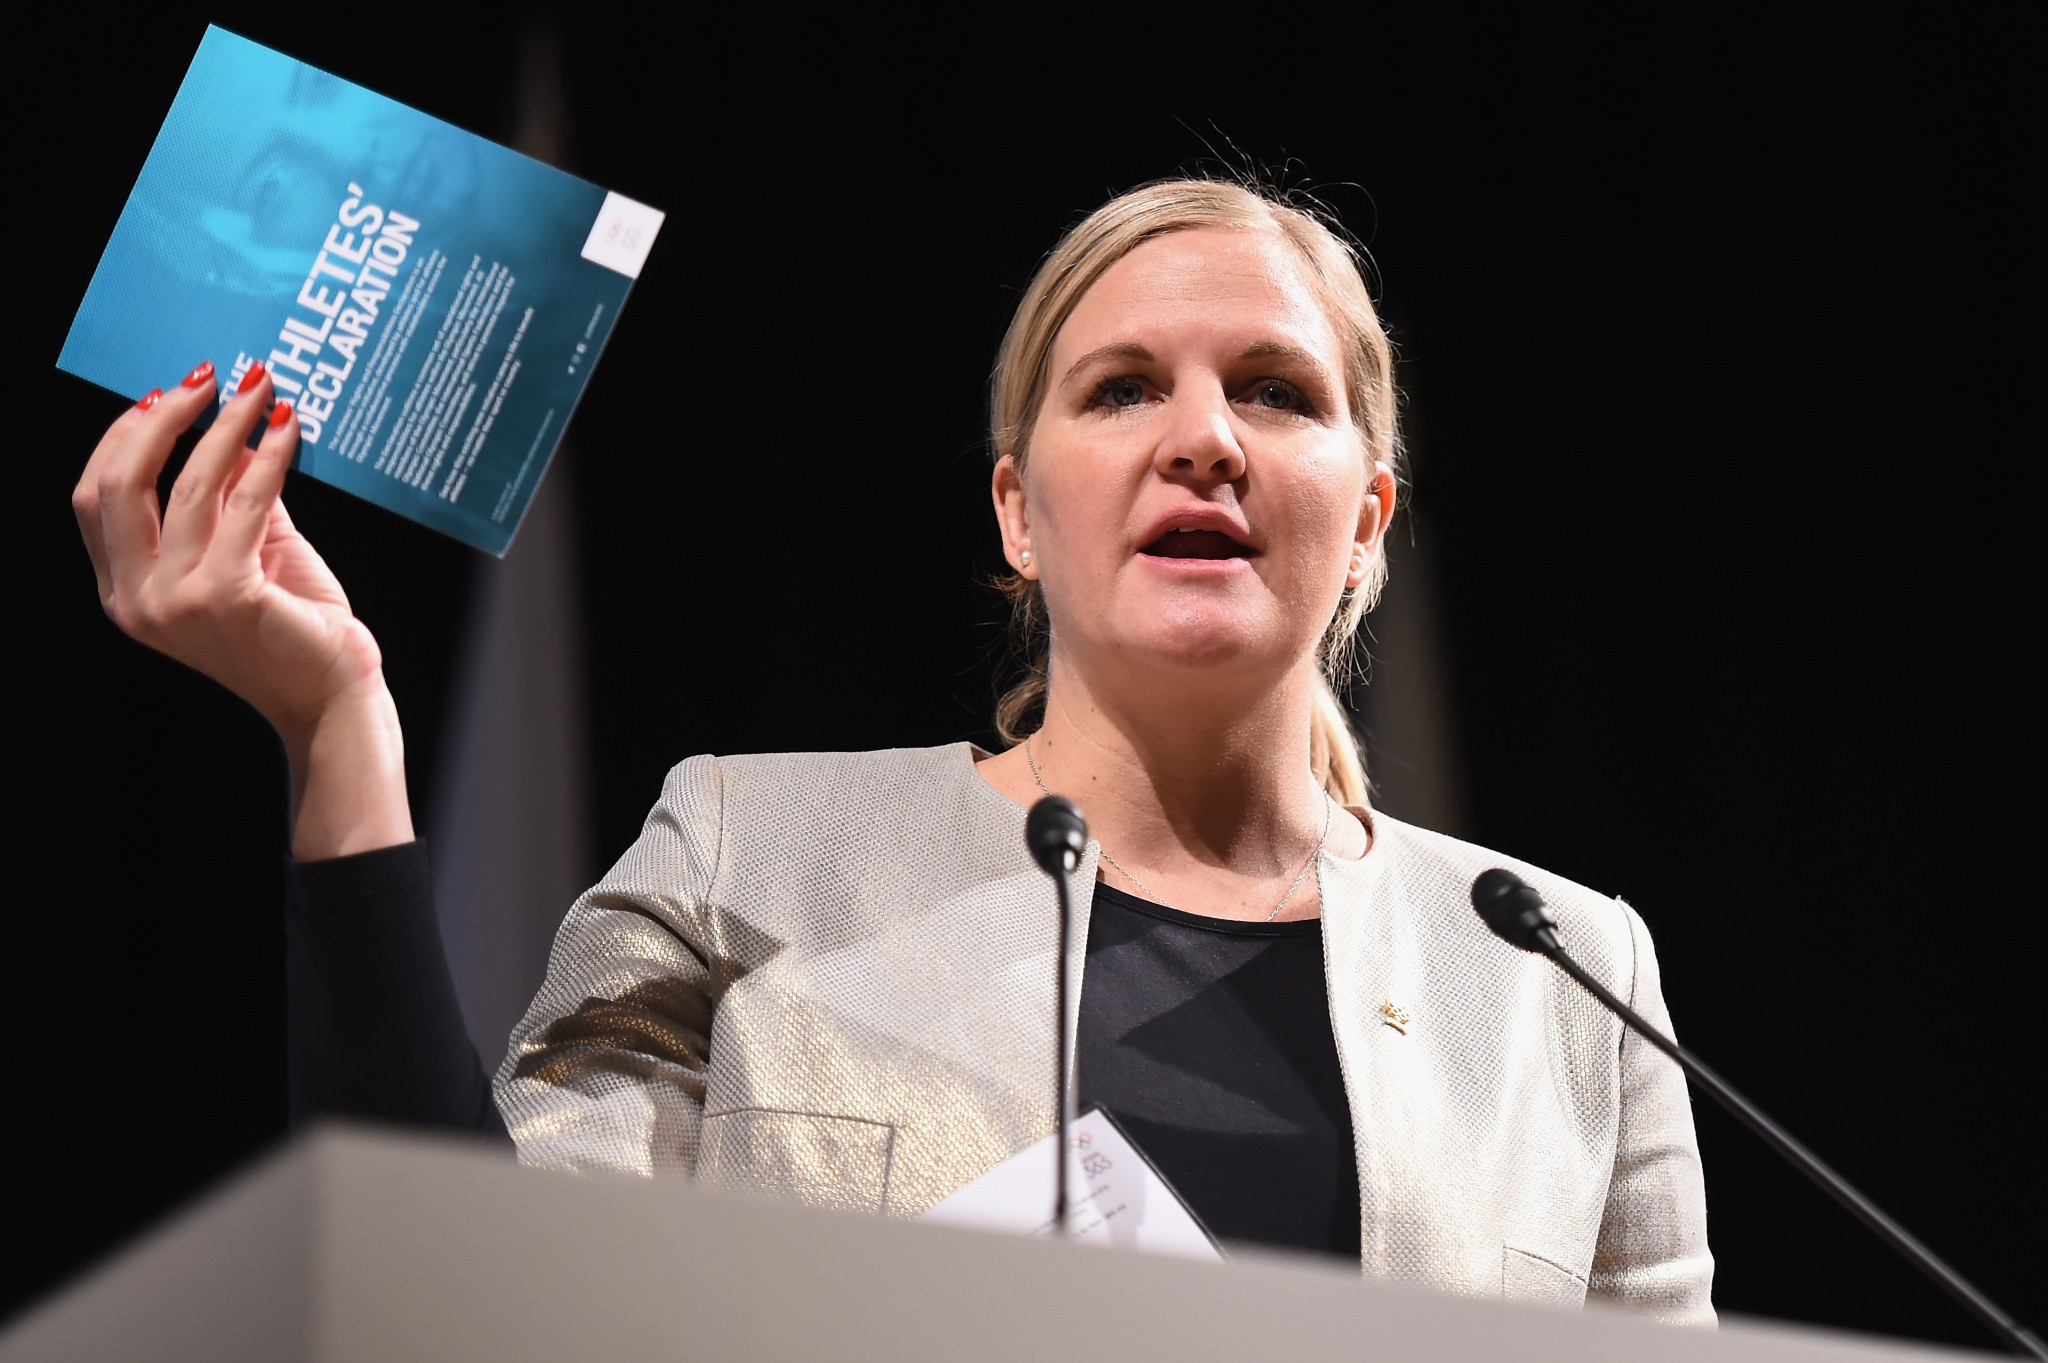 The IOC Athletes' Commission is chaired by Zimbabwe's Kirsty Coventry ©Getty Images